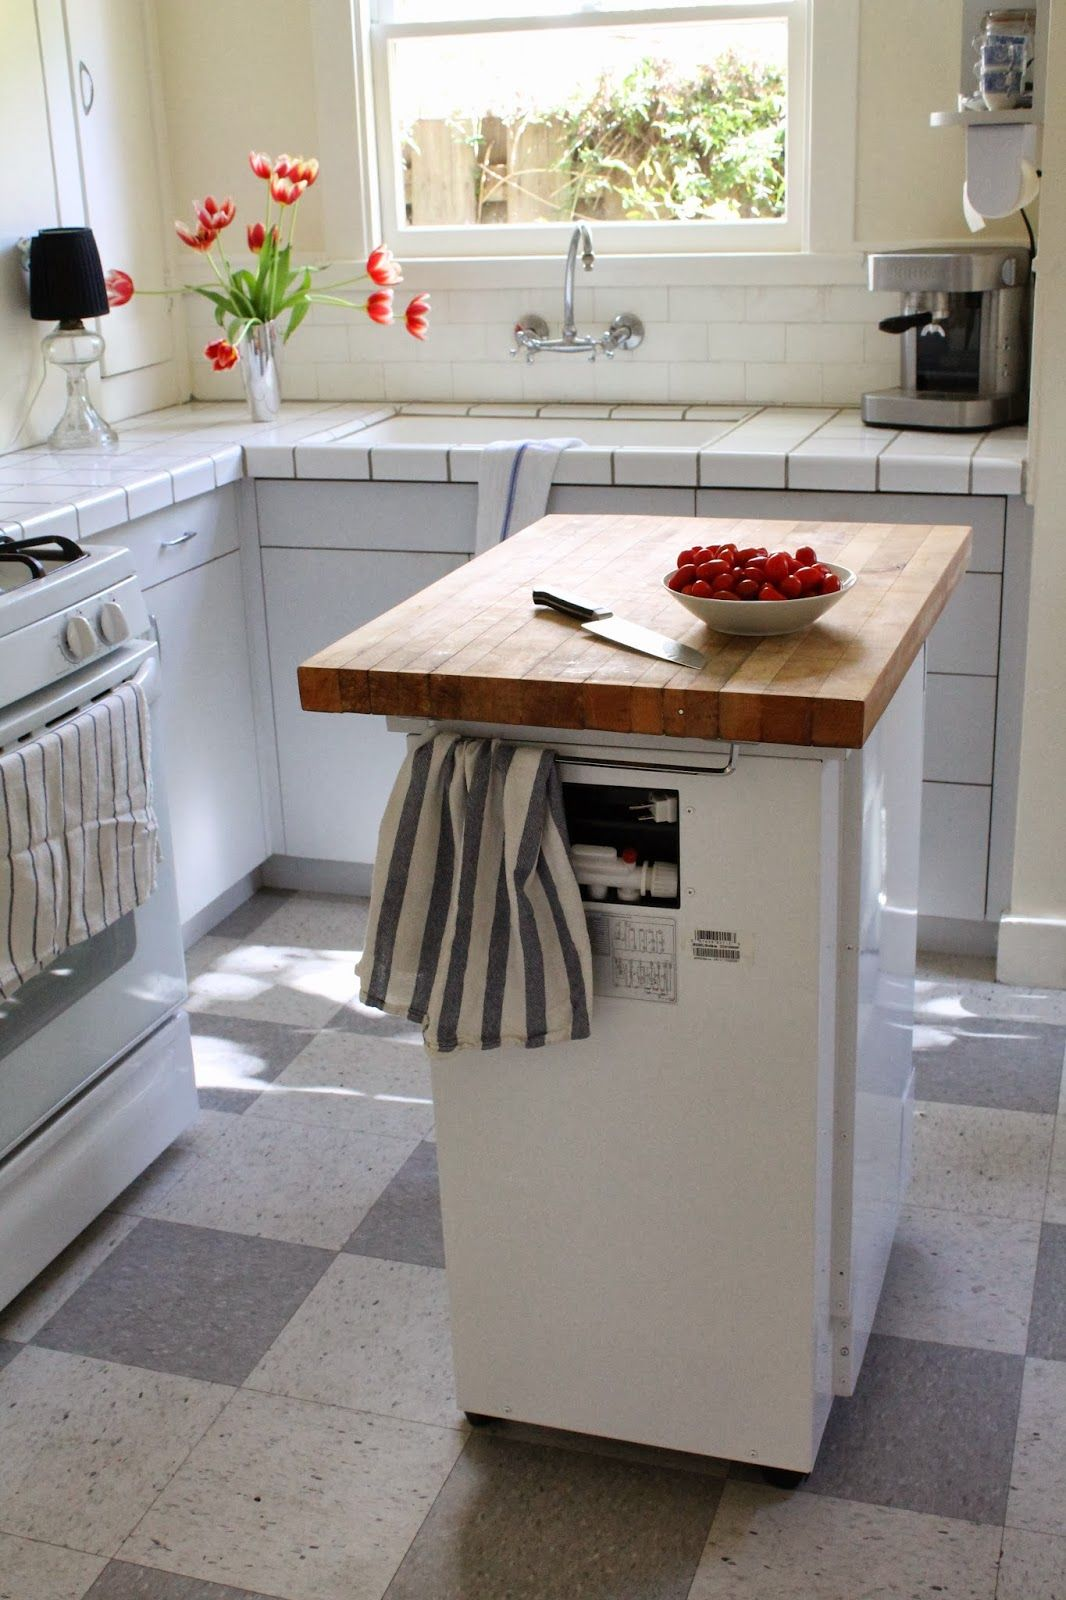 small kitchen dishwashers cool knives we will most likely have to utilize a portable dishwasher